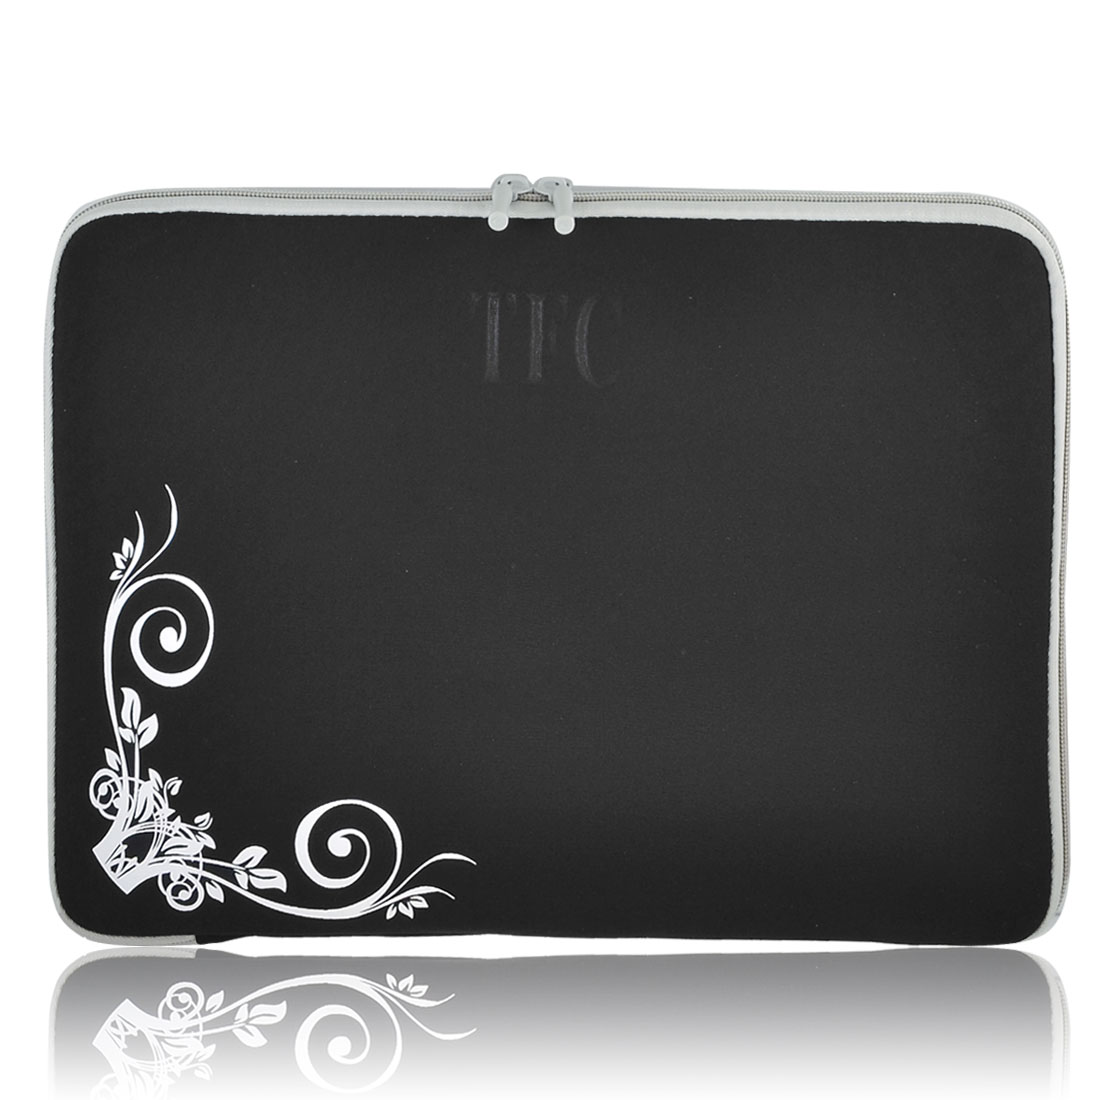 "14"" 14.1"" 14.4"" Black White Floral Flowers Notebook Laptop Sleeve Bag Case for Lenovo"